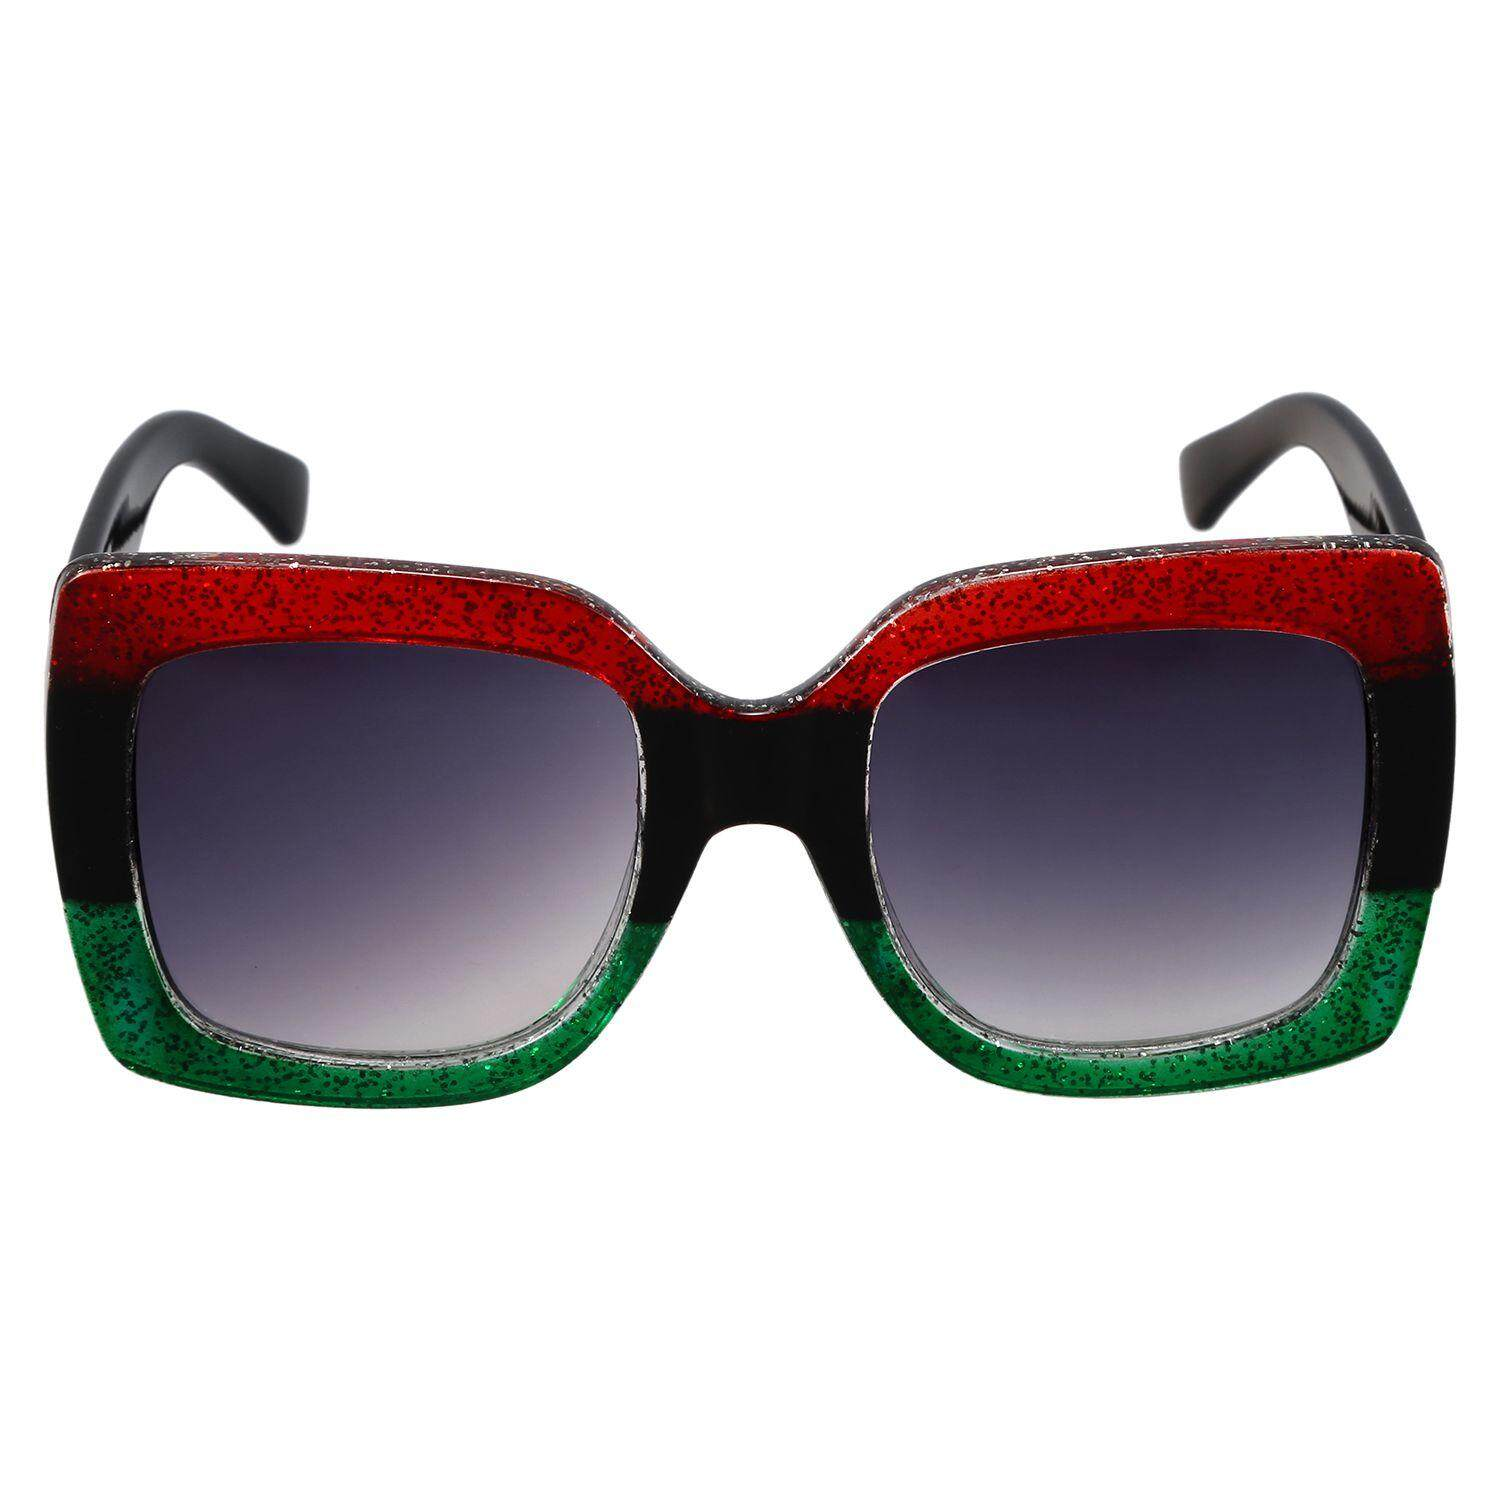 e2fa5076ac3 Square Sunglasses Women Vintage Oversized SunGlasses Luxury Ladies Eyewear  S17069 Red Black Green